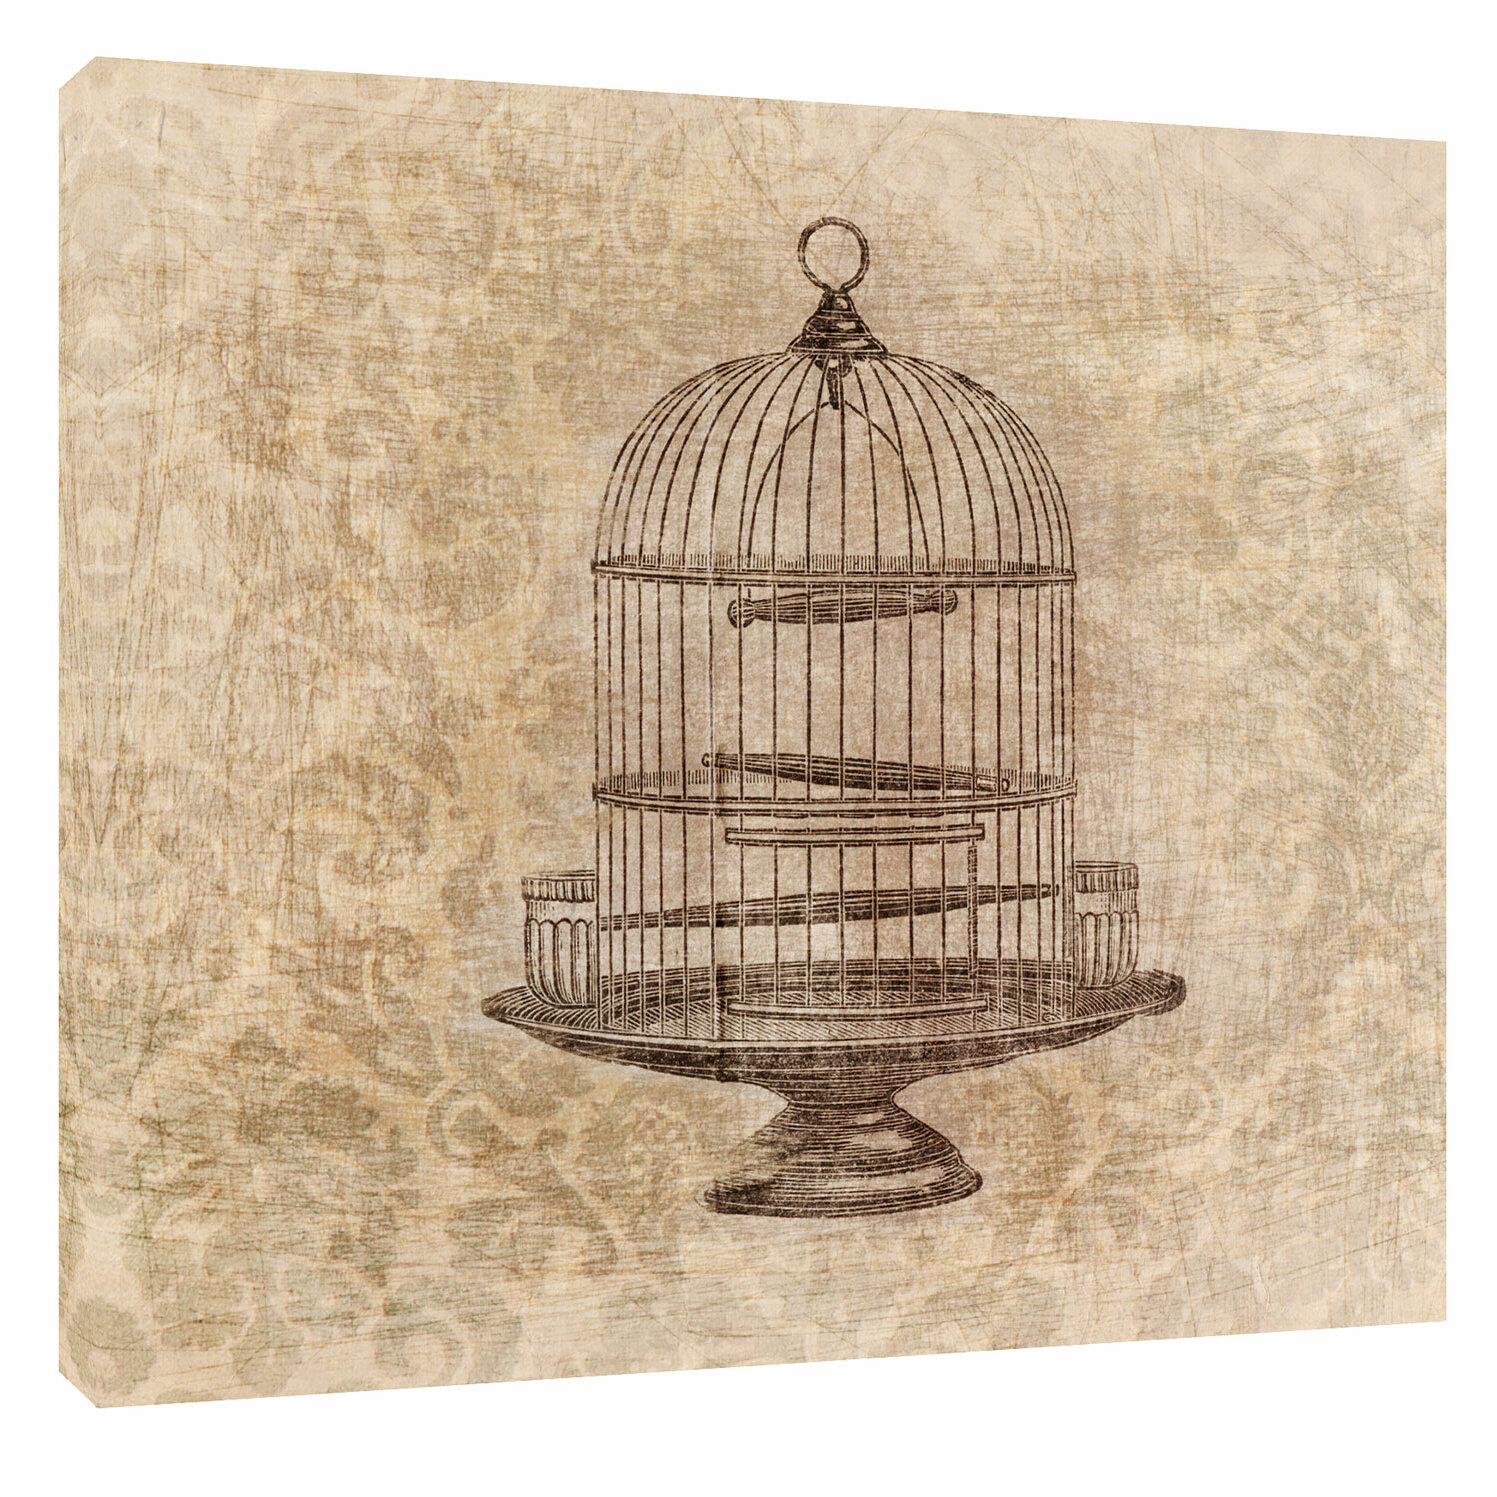 Ptm Images Birdcage Graphic Art On Wrapped Canvas Wayfair